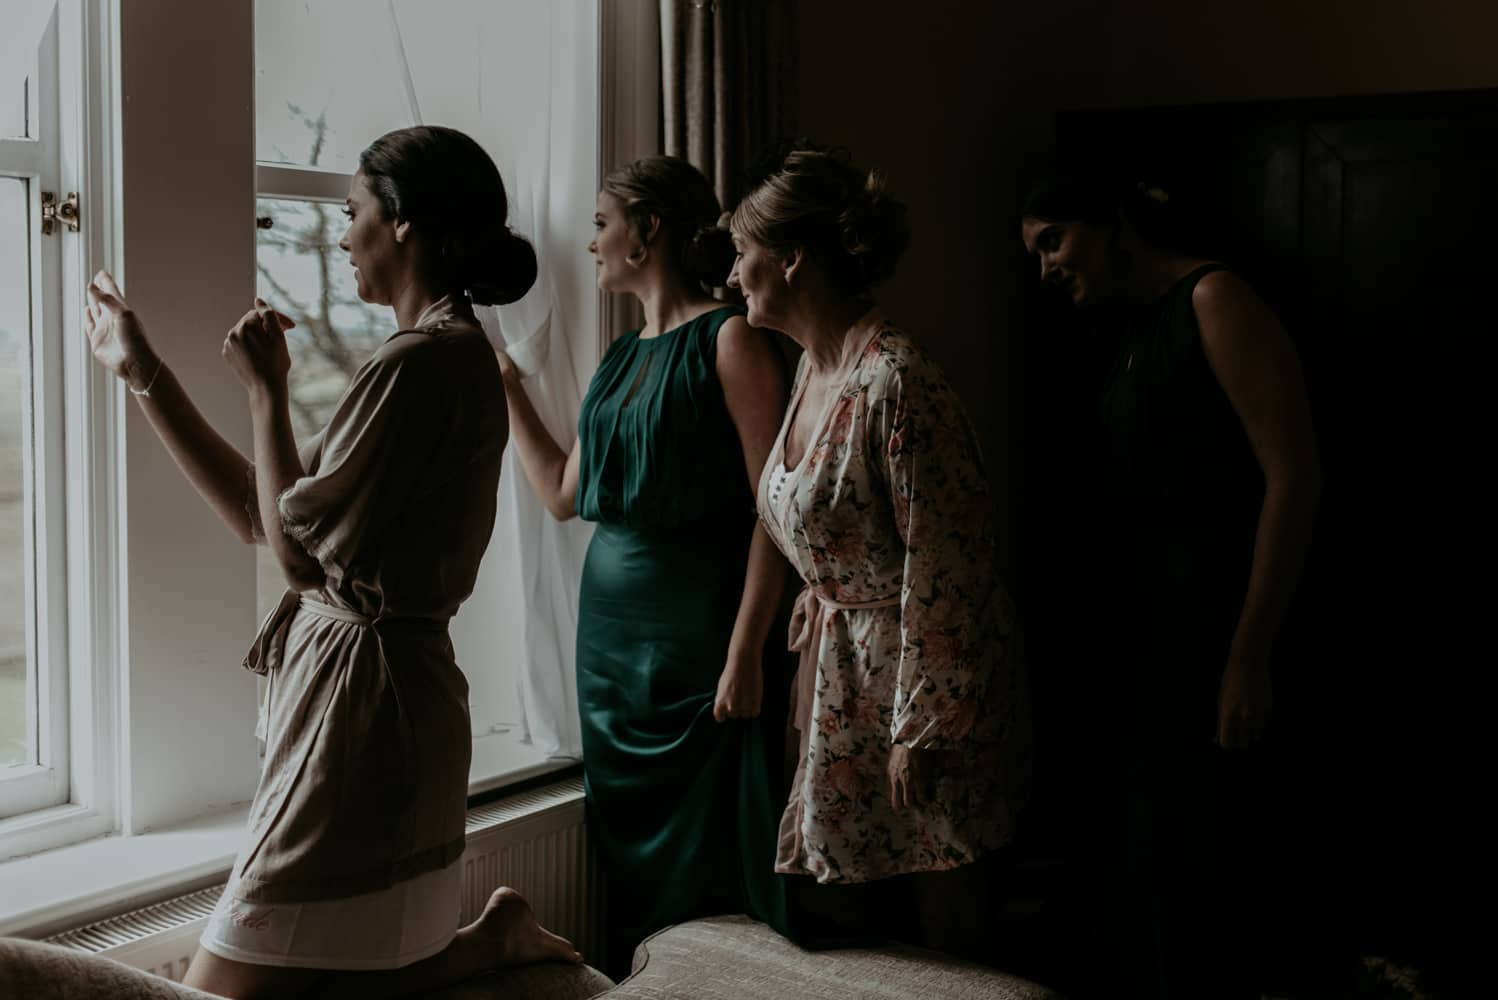 bride and bridesmaids at the window